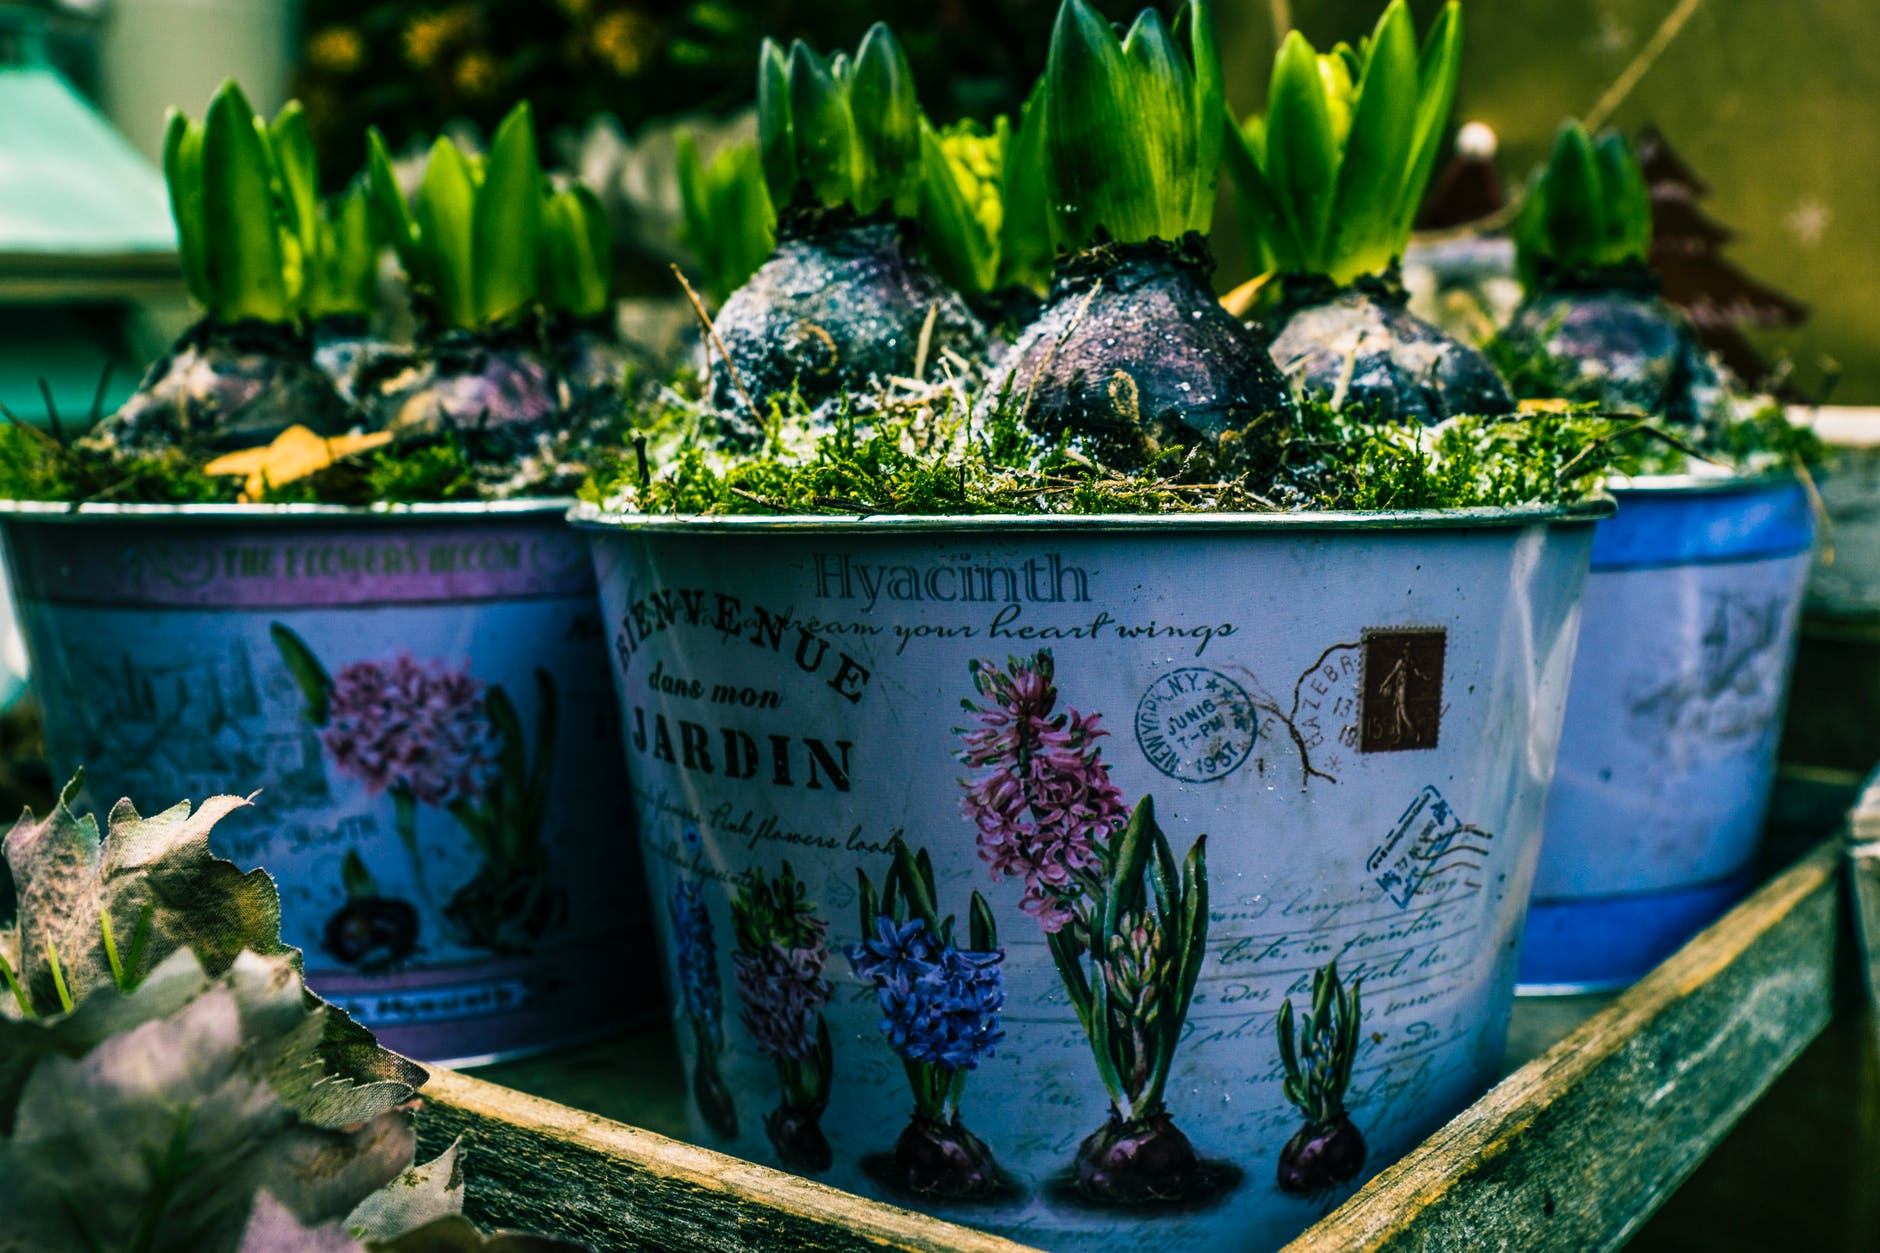 9 Smart Ways To Grow Your Own Food So You Can Save Money